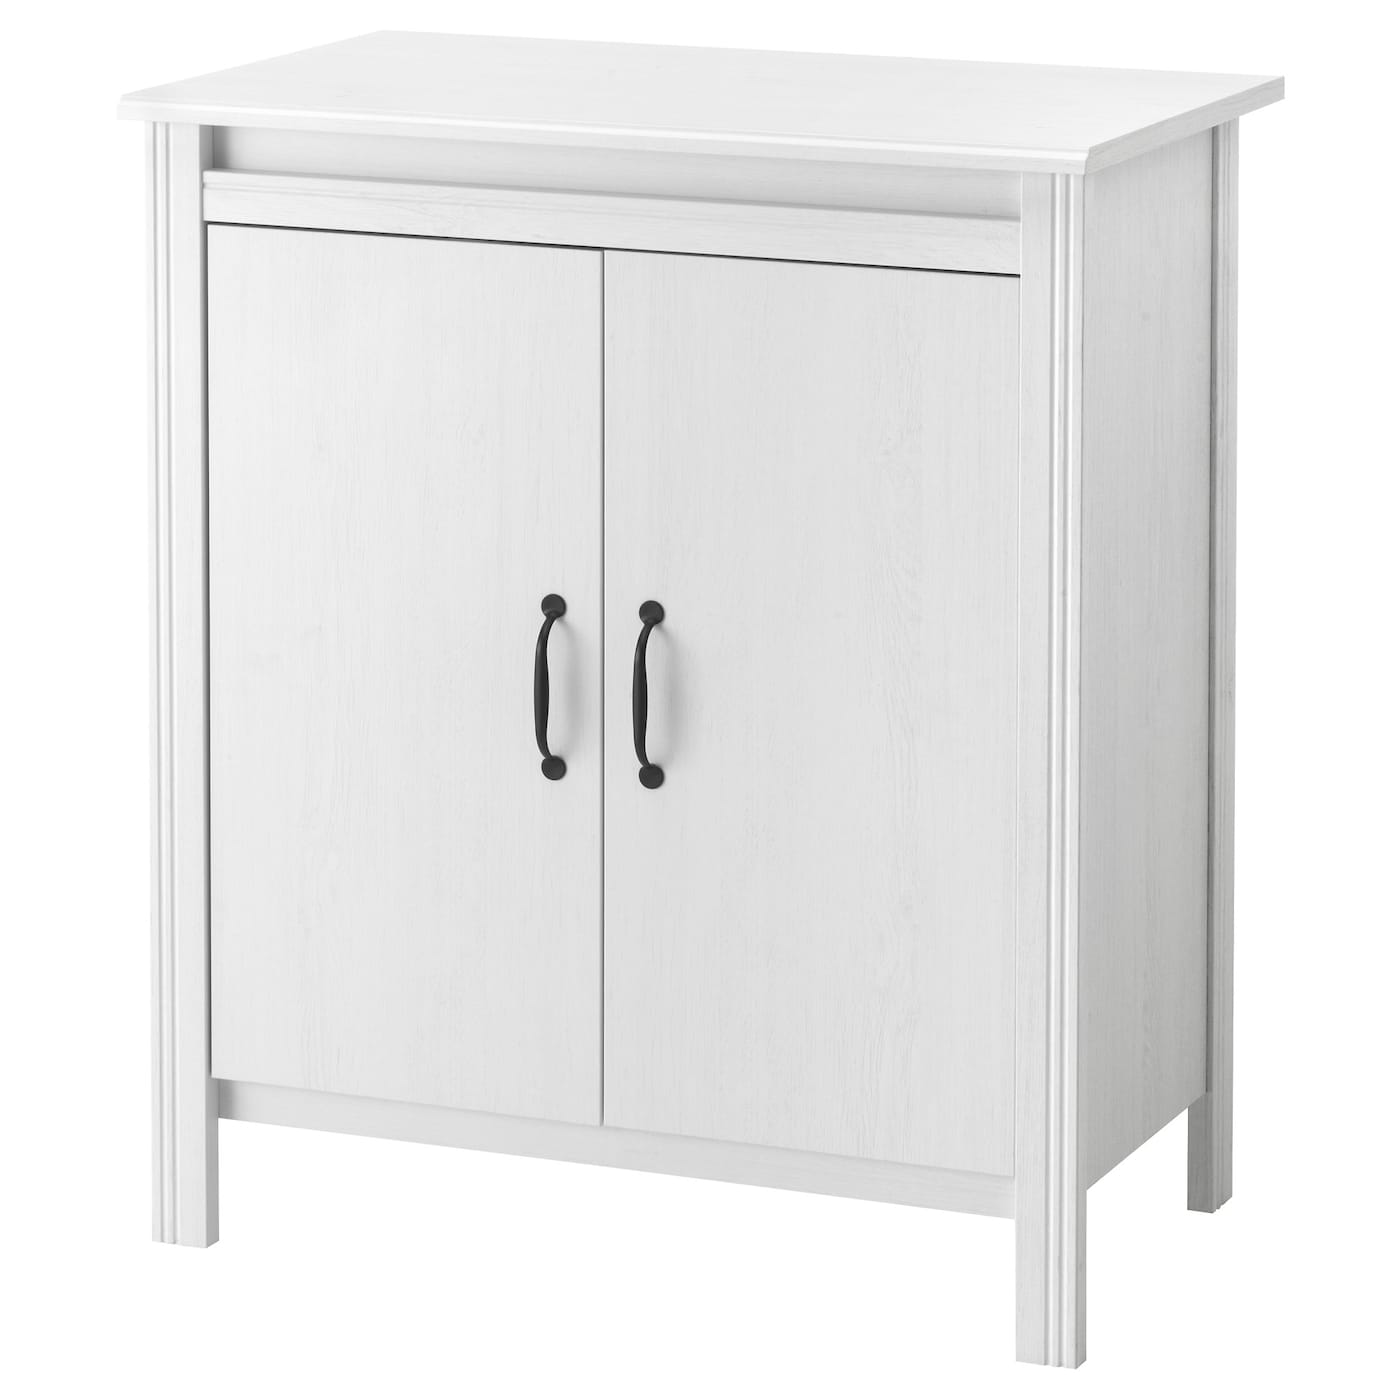 Brusali cabinet with doors white 80 x 93 cm ikea - Ikea cabinet doors on existing cabinets ...